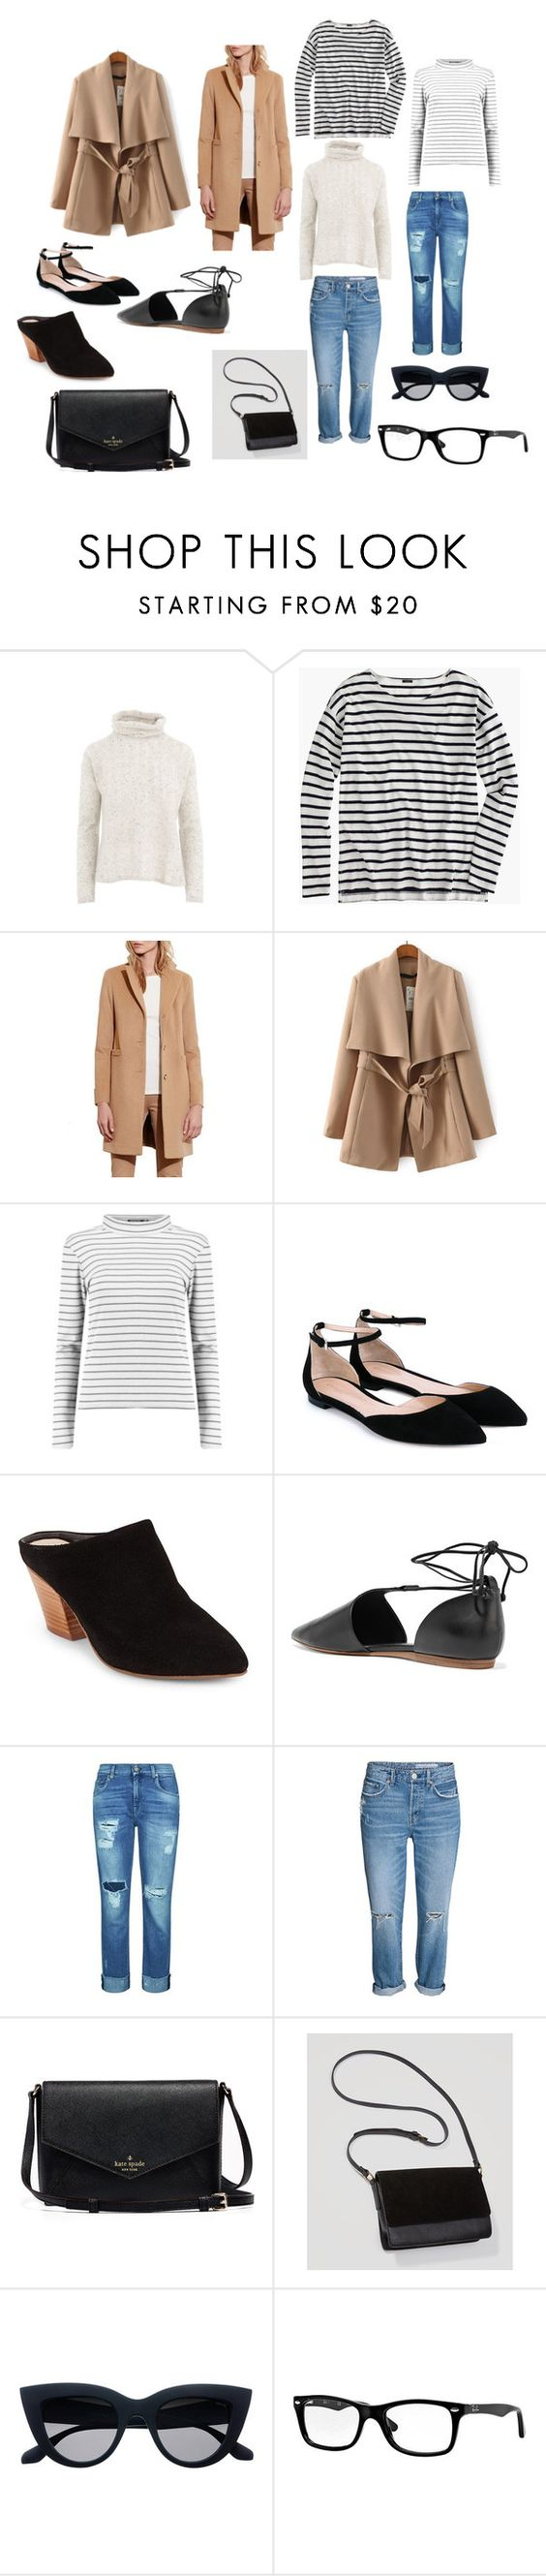 """sleek"" by classykate on Polyvore featuring Quinn, J.Crew, Lauren Ralph Lauren, Gianvito Rossi, Seychelles, Vince, 7 For All Mankind, LOFT and Ray-Ban"